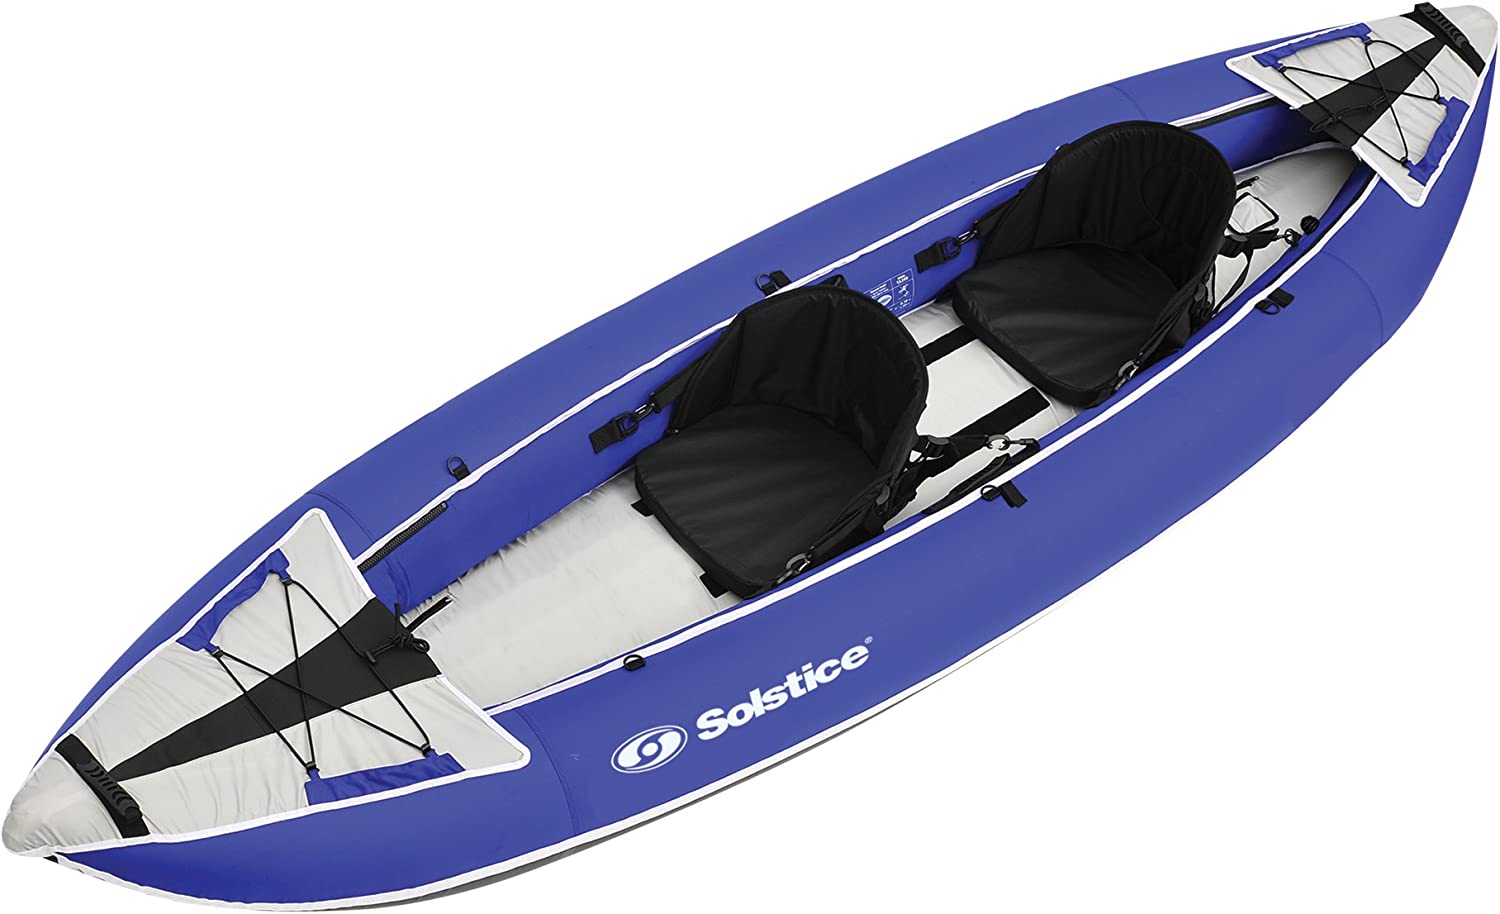 Amazon.com: Solsticio Durango Kayak: Sports & Outdoors